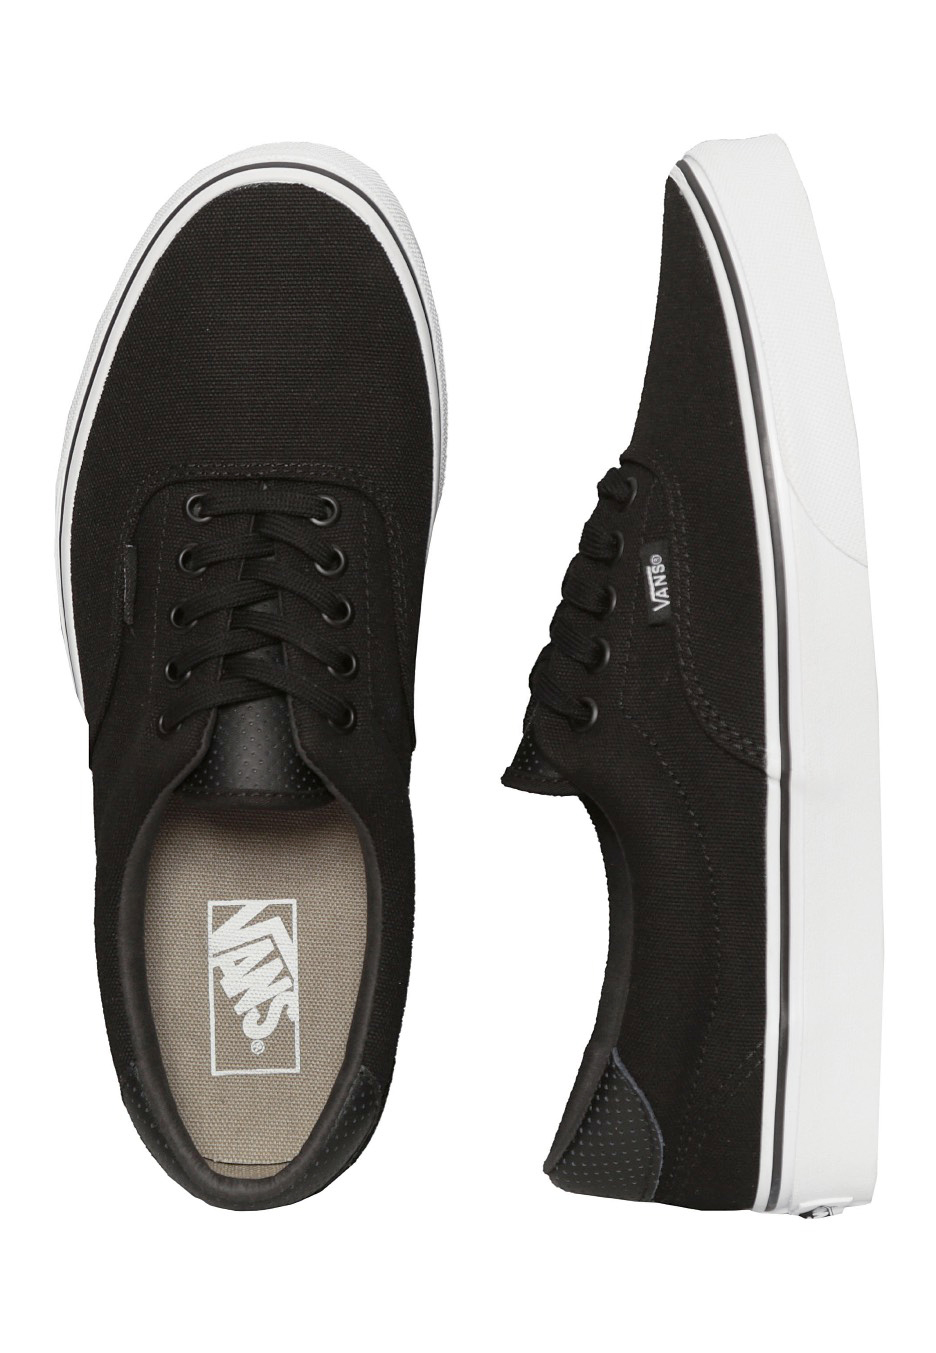 Vans - Era 59 C&P Black/True White - Shoes